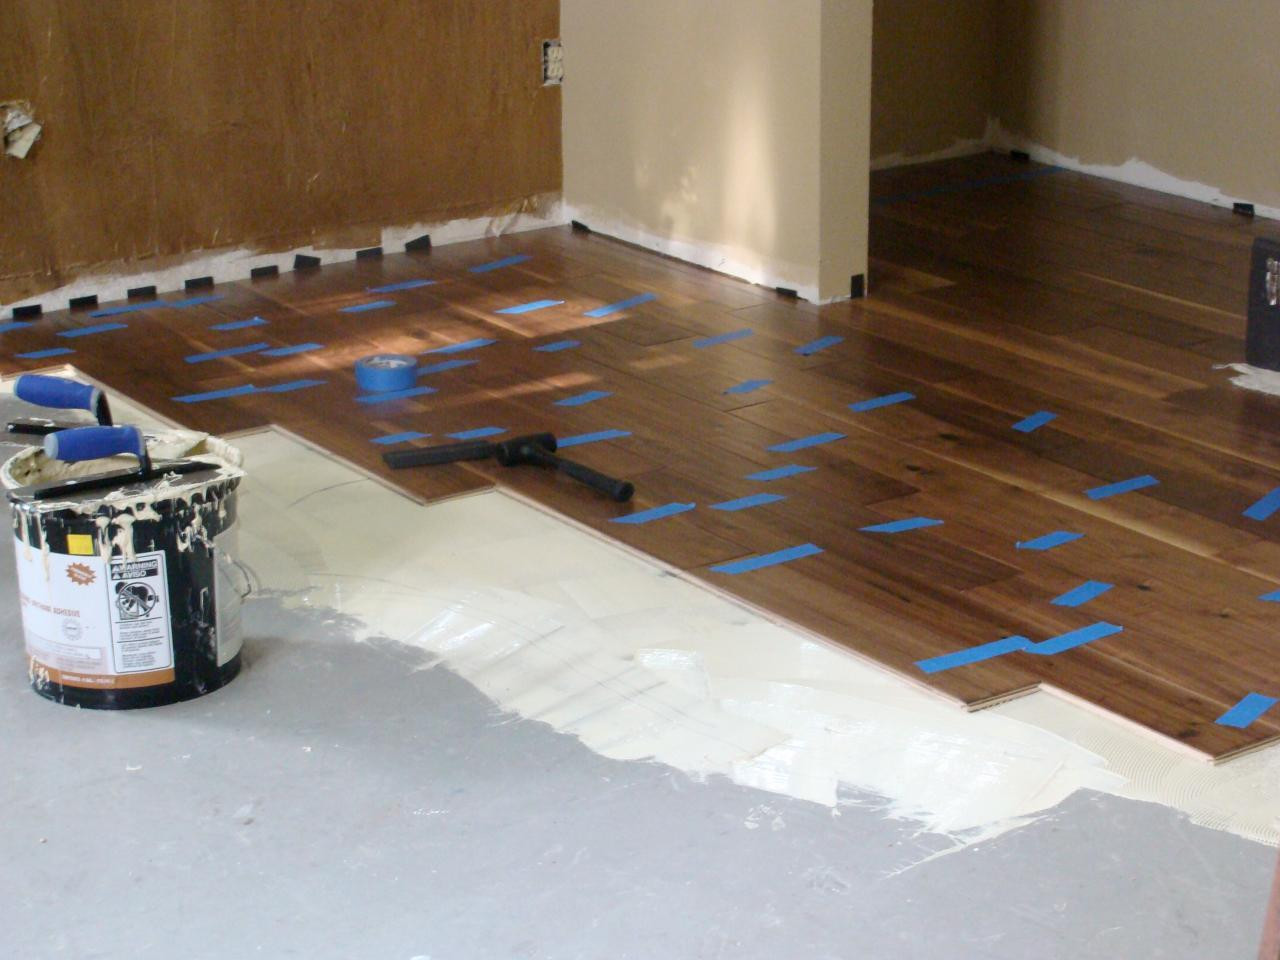 how to refinish hardwood floors easy of luxury of diy wood floor refinishing collection regarding diy wood floor refinishing beautiful installing hardwood flooring over concrete how tos